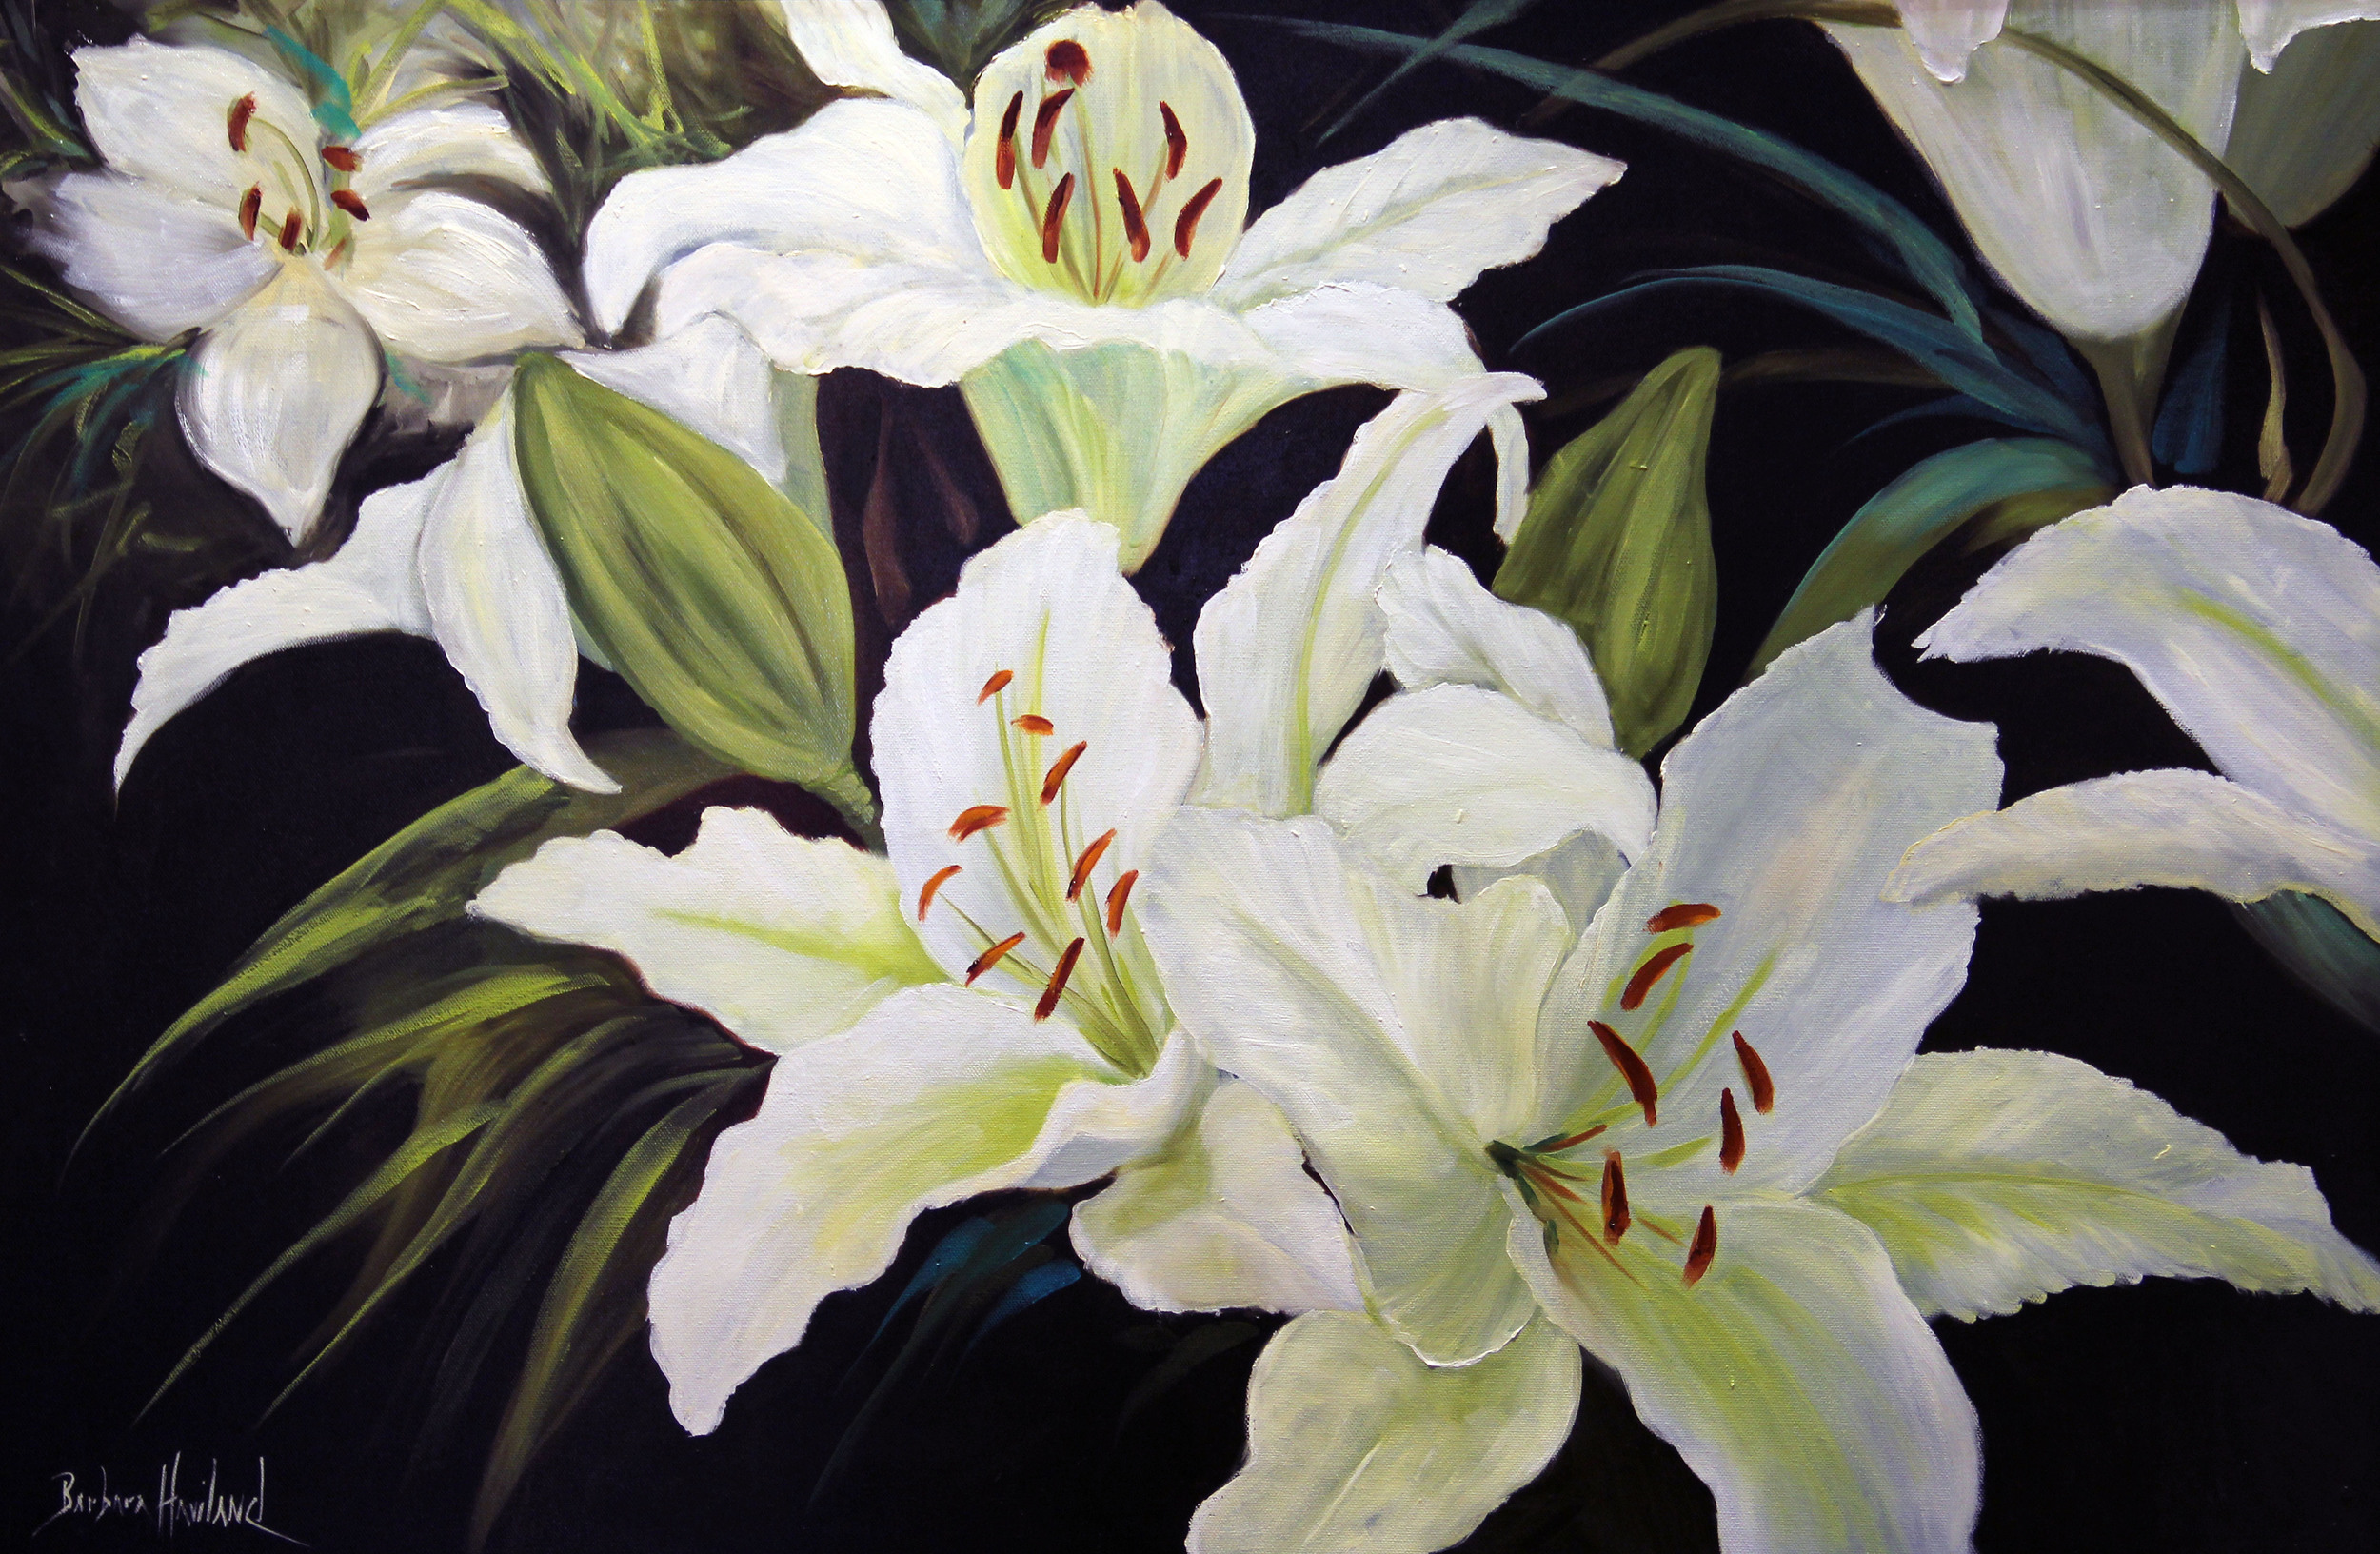 Barabara Haviland  White Day Lilies  36X24  Oil